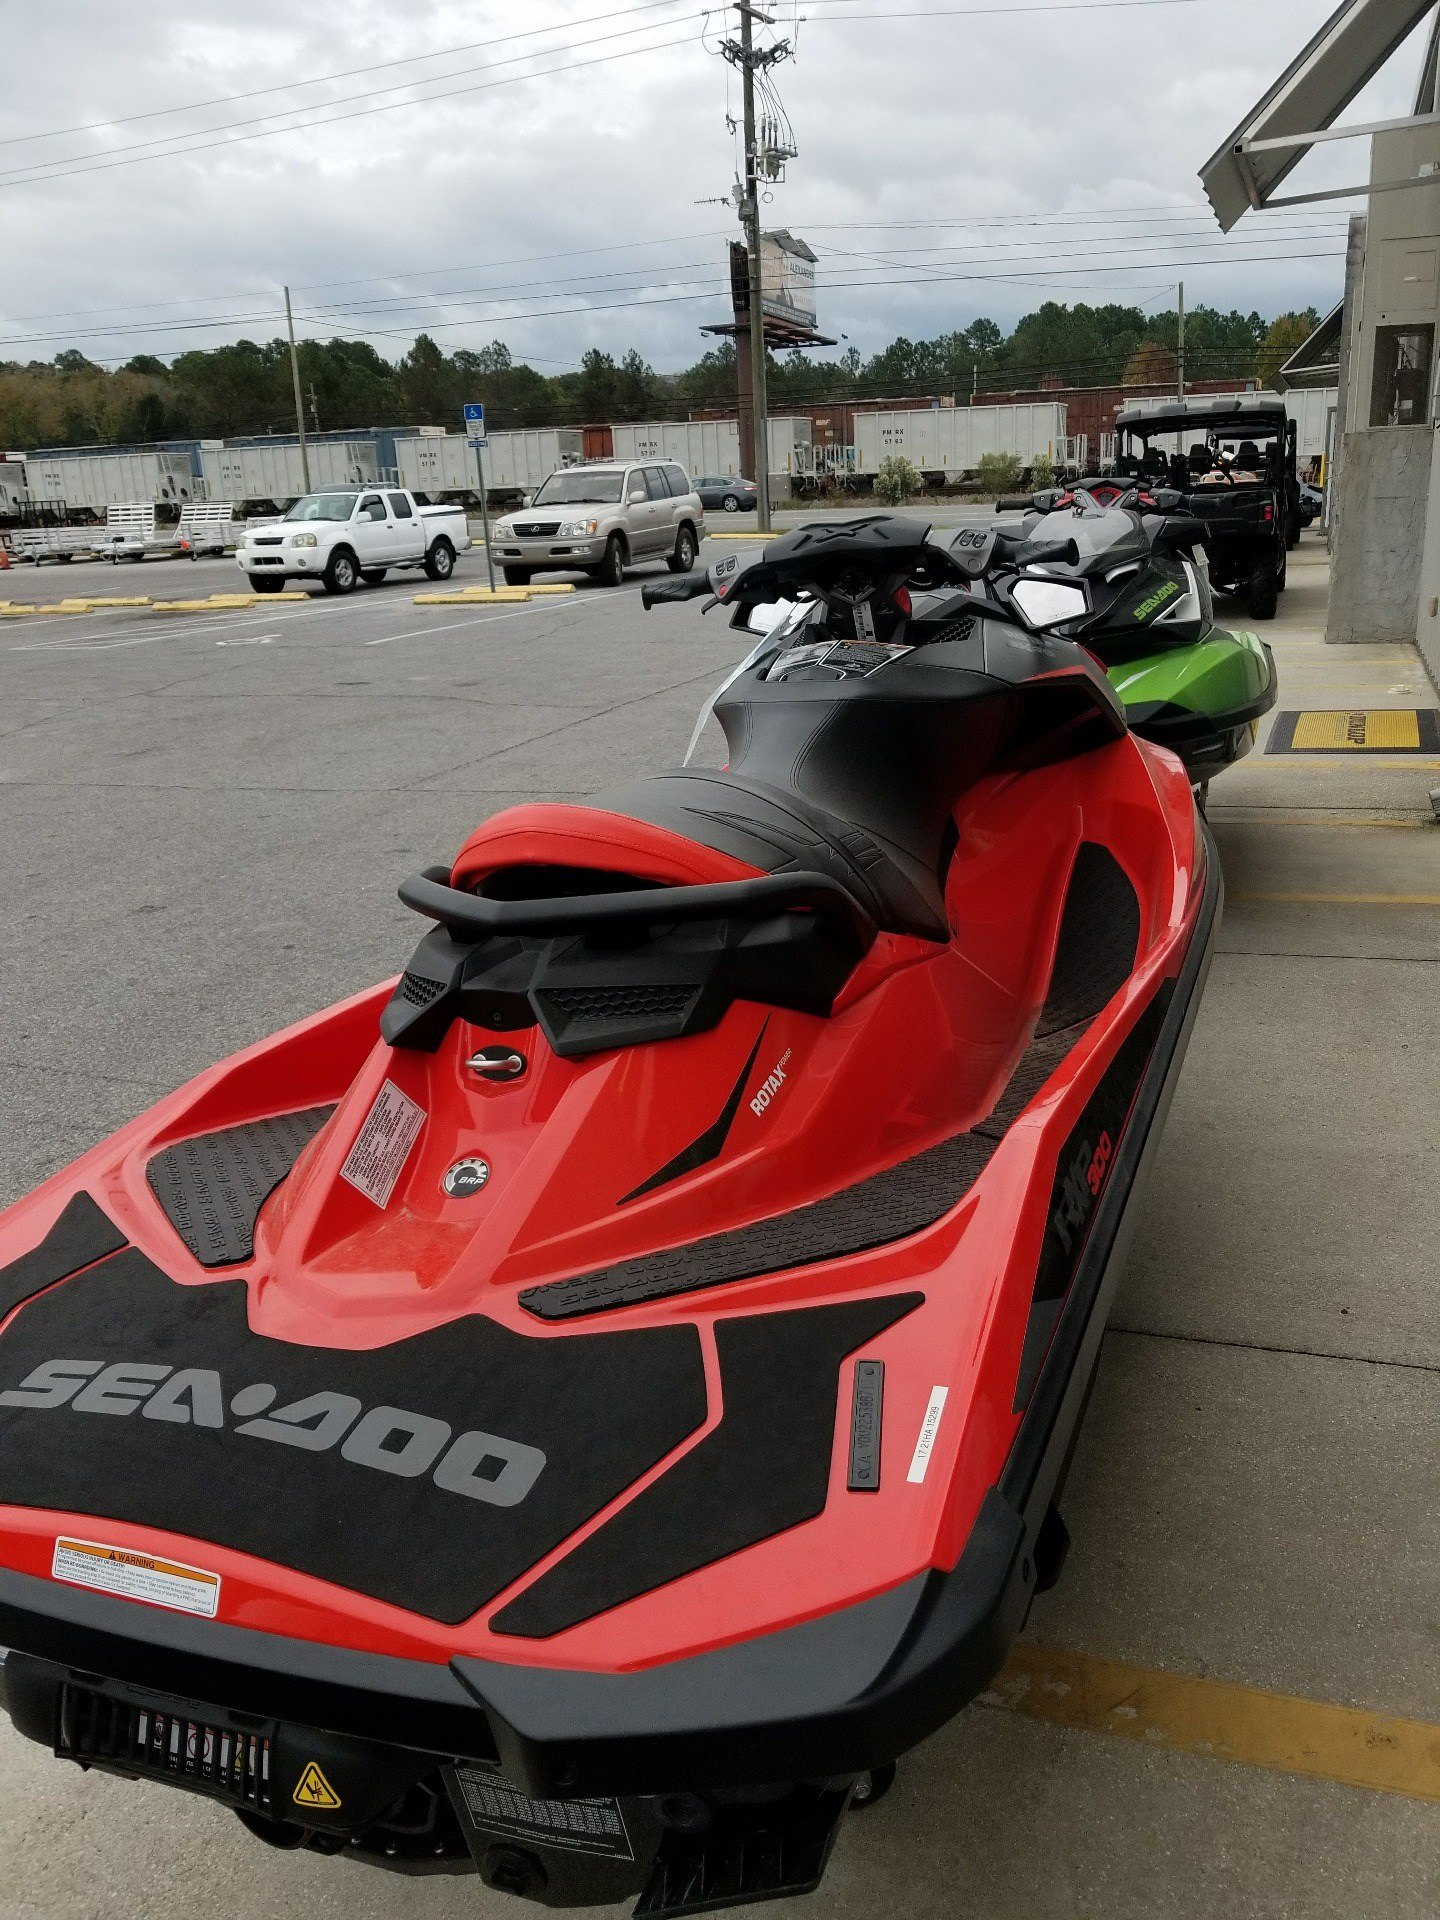 2017 Sea-Doo RXP-X 300 in Panama City, Florida